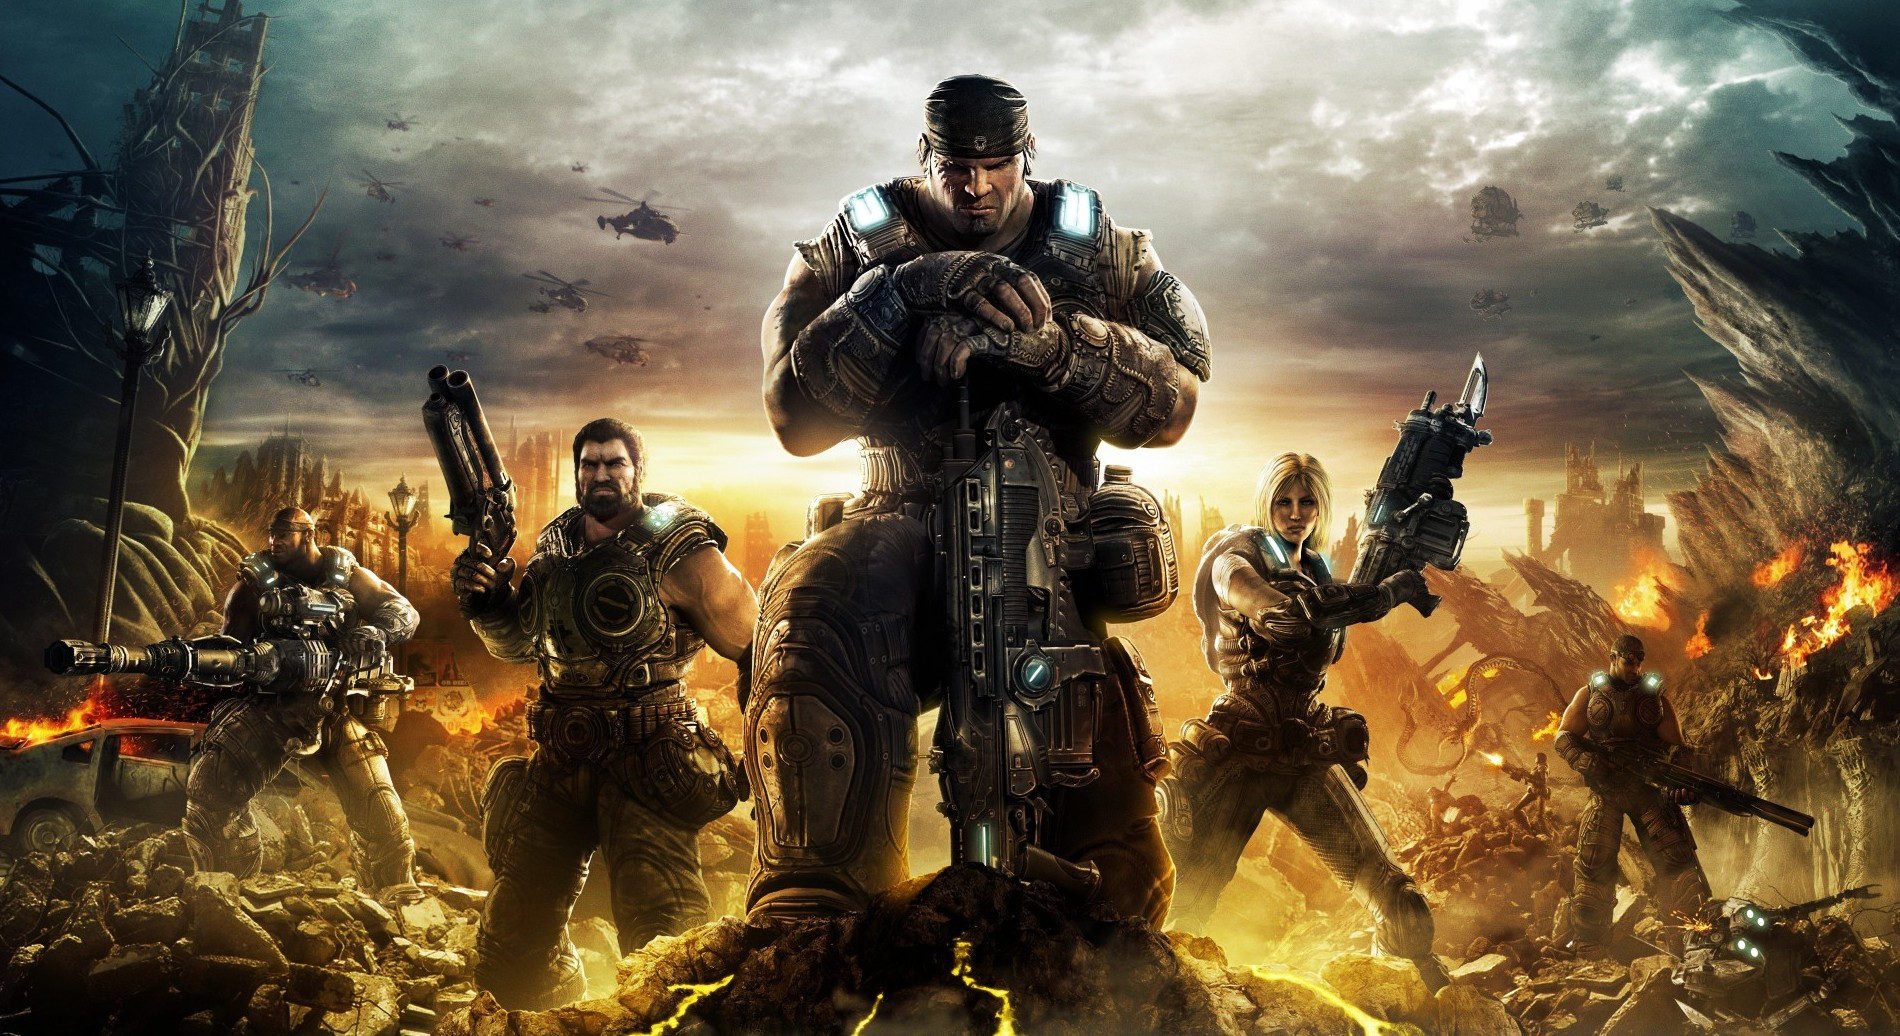 Gears of War: With this, I truly appreciated the co-op & online play with others.